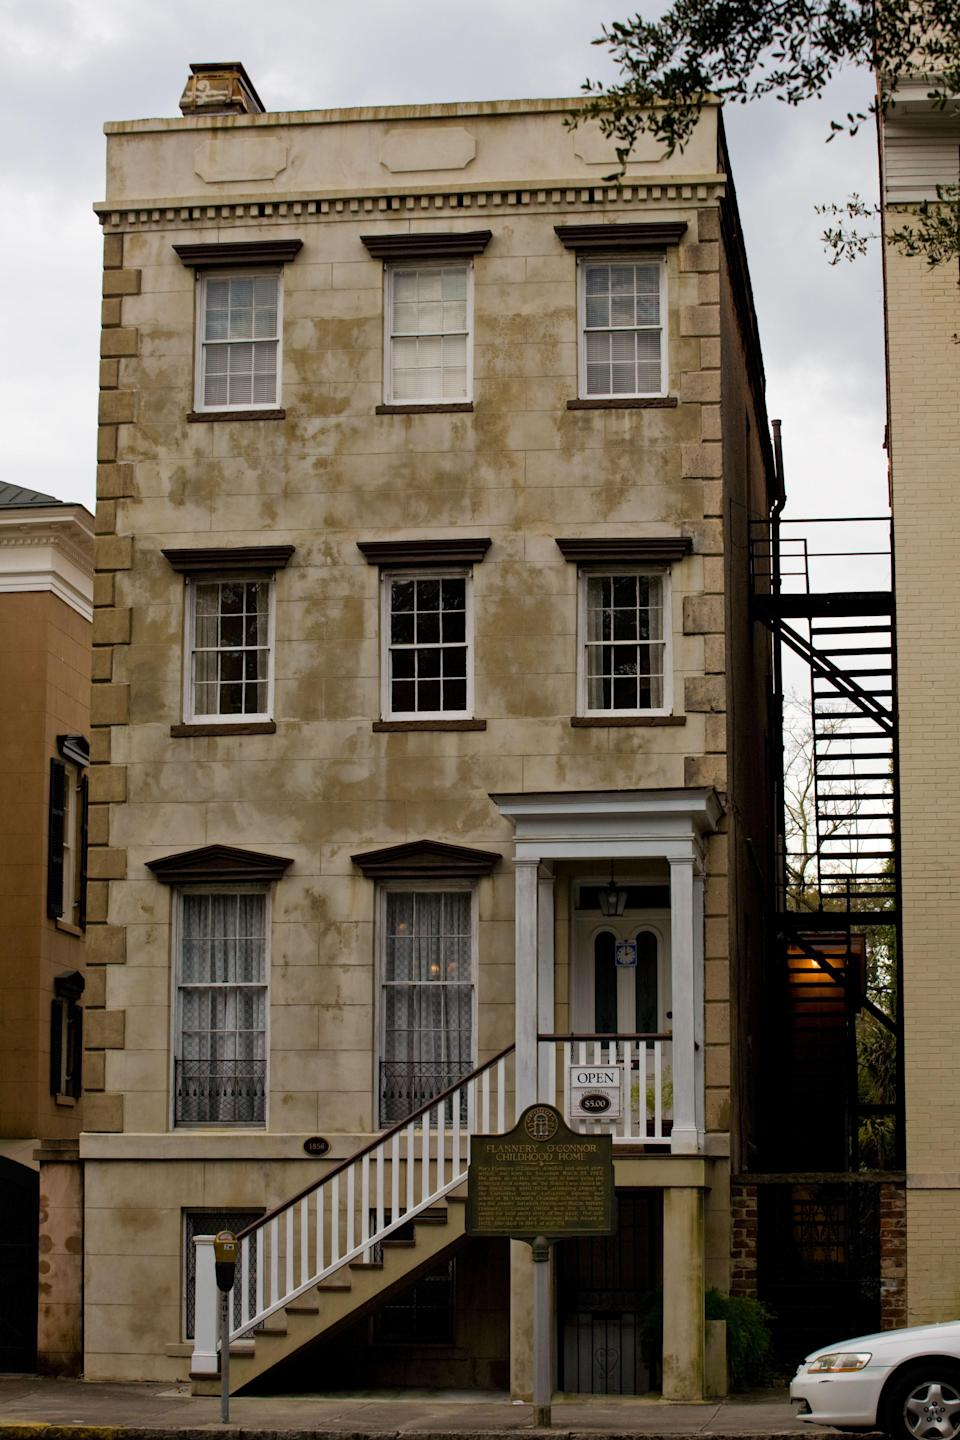 "<p><strong>What's this place all about?</strong> Savannah's favorite daughter, the great American writer Flannery O'Connor, was born in Savannah in 1925, and spent her childhood in a charming row house facing Lafayette Square. Though O'Connor didn't write her famed short story ""A Good Man Is Hard to Find"" here, nor did she complete her classic novel ""Wise Blood,"" her early years were not without significant accomplishment. Famously, young Mary Flannery taught a chicken to walk backwards in the walled backyard of this building. The eccentric spirit of O'Connor and her work infuses the museum today, which is just about as weird as you'd expect. It's also as fun as a restored Depression-era writer's home could possibly be. The O'Connor quote that figures prominently on its website—as well as some merch sold inside—sums it up: ""Whenever I'm asked why Southern writers particularly have a penchant for writing about freaks, I say it is because we are still able to recognize one.""</p> <p><strong>What will we see here?</strong> Built in 1856, the multilevel Greek Revival home is filled with artifacts from O'Connor's life as well as period decor, including refurbished chandeliers in the parlor and original heart-pine flooring. You'll see O'Connor's crib, some drawings she made in college, and a room of rare books; a rear kitchen overlooks the beautiful backyard garden, and front windows afford a view of the Cathedral of Saint John the Baptist, where O'Connor attended church.</p> <p>There aren't rotating exhibits, but the museum does keep up a robust schedule of activities: a regular free lecture series, an annual holiday reading of Truman Capote's short story ""A Christmas Memory,"" and—best of all—a celebration of O'Connor's birthday, which features a parade and street fair out front in Lafayette Square. If you're here in late March, don't miss it; a pure expression of the old weird Savannah, the event includes a raucous marching band, a peacock-decorated birthday cake, folks in costume, and a game of chickenshit bingo. What's chickenshit bingo? You'll have to come to find out.</p> <p><strong>What did you make of the crowd?</strong> This isn't a crowded museum. On the other hand, it can't be: There's not enough room.</p> <p><strong>Any guided tours worth trying?</strong> You'll learn the significance of each room and artifact on a 30-minute guided tour (included with the price of admission). The guides are charming, funny, and amiable—everything about this experience feels like a real labor of love, and it takes a special kind of person to really love O'Connor.</p> <p><strong>Gift shop: obligatory, inspiring—or skip it?</strong> The Flannery O'Connor Home Foundation—which runs this space—stocks a great gift shop, which is located in the parlor on the first floor. Peacock-labeled shot glass and beer koozie? Check. Colorful magnets with wry quotes like ""There's many a bestseller that could have been prevented by a good teacher""? Check. Cup O'Connor House Blend from the excellent local roastery PERC? That's here, too, along with a good selection of books by and about the author herself.</p> <p><strong>What if we get hungry?</strong> Head just around the corner to Clary's Cafe, a charming (if heavily-trafficked) Southern diner where you can get your fill of biscuits and gravy.</p> <p><strong>How much time will we need?</strong> It only takes about a half-hour to see this museum. That said, don't bring anyone who doesn't like O'Connor.</p>"